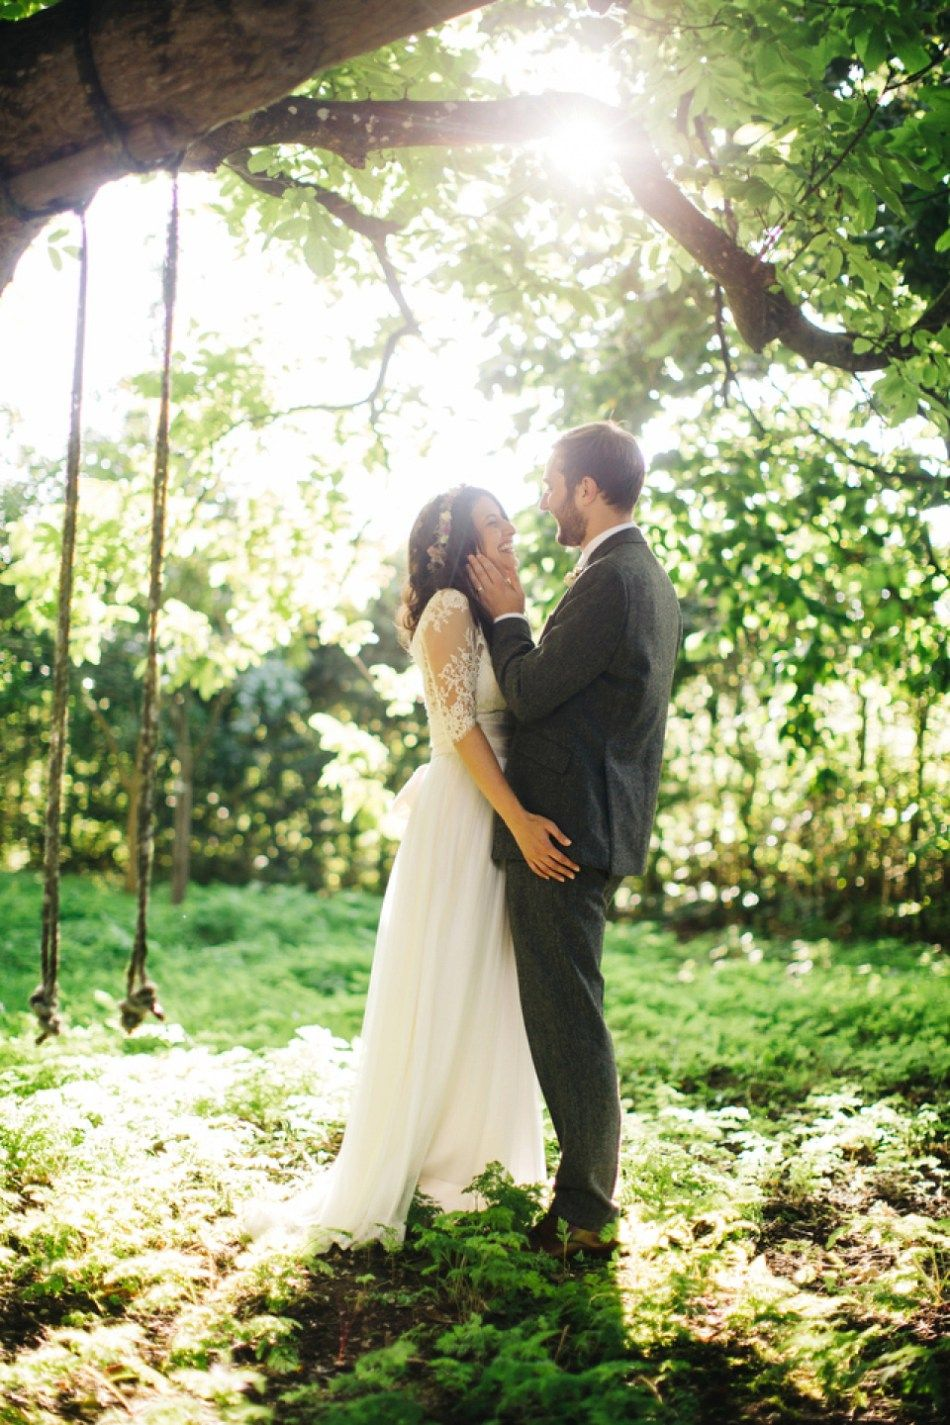 Leila wore a bespoke gown by dressmaker Dana Bolton for her rustic, homespun Autumn barn wedding.   Photography by http://www.richardskinsphotography.co.uk/